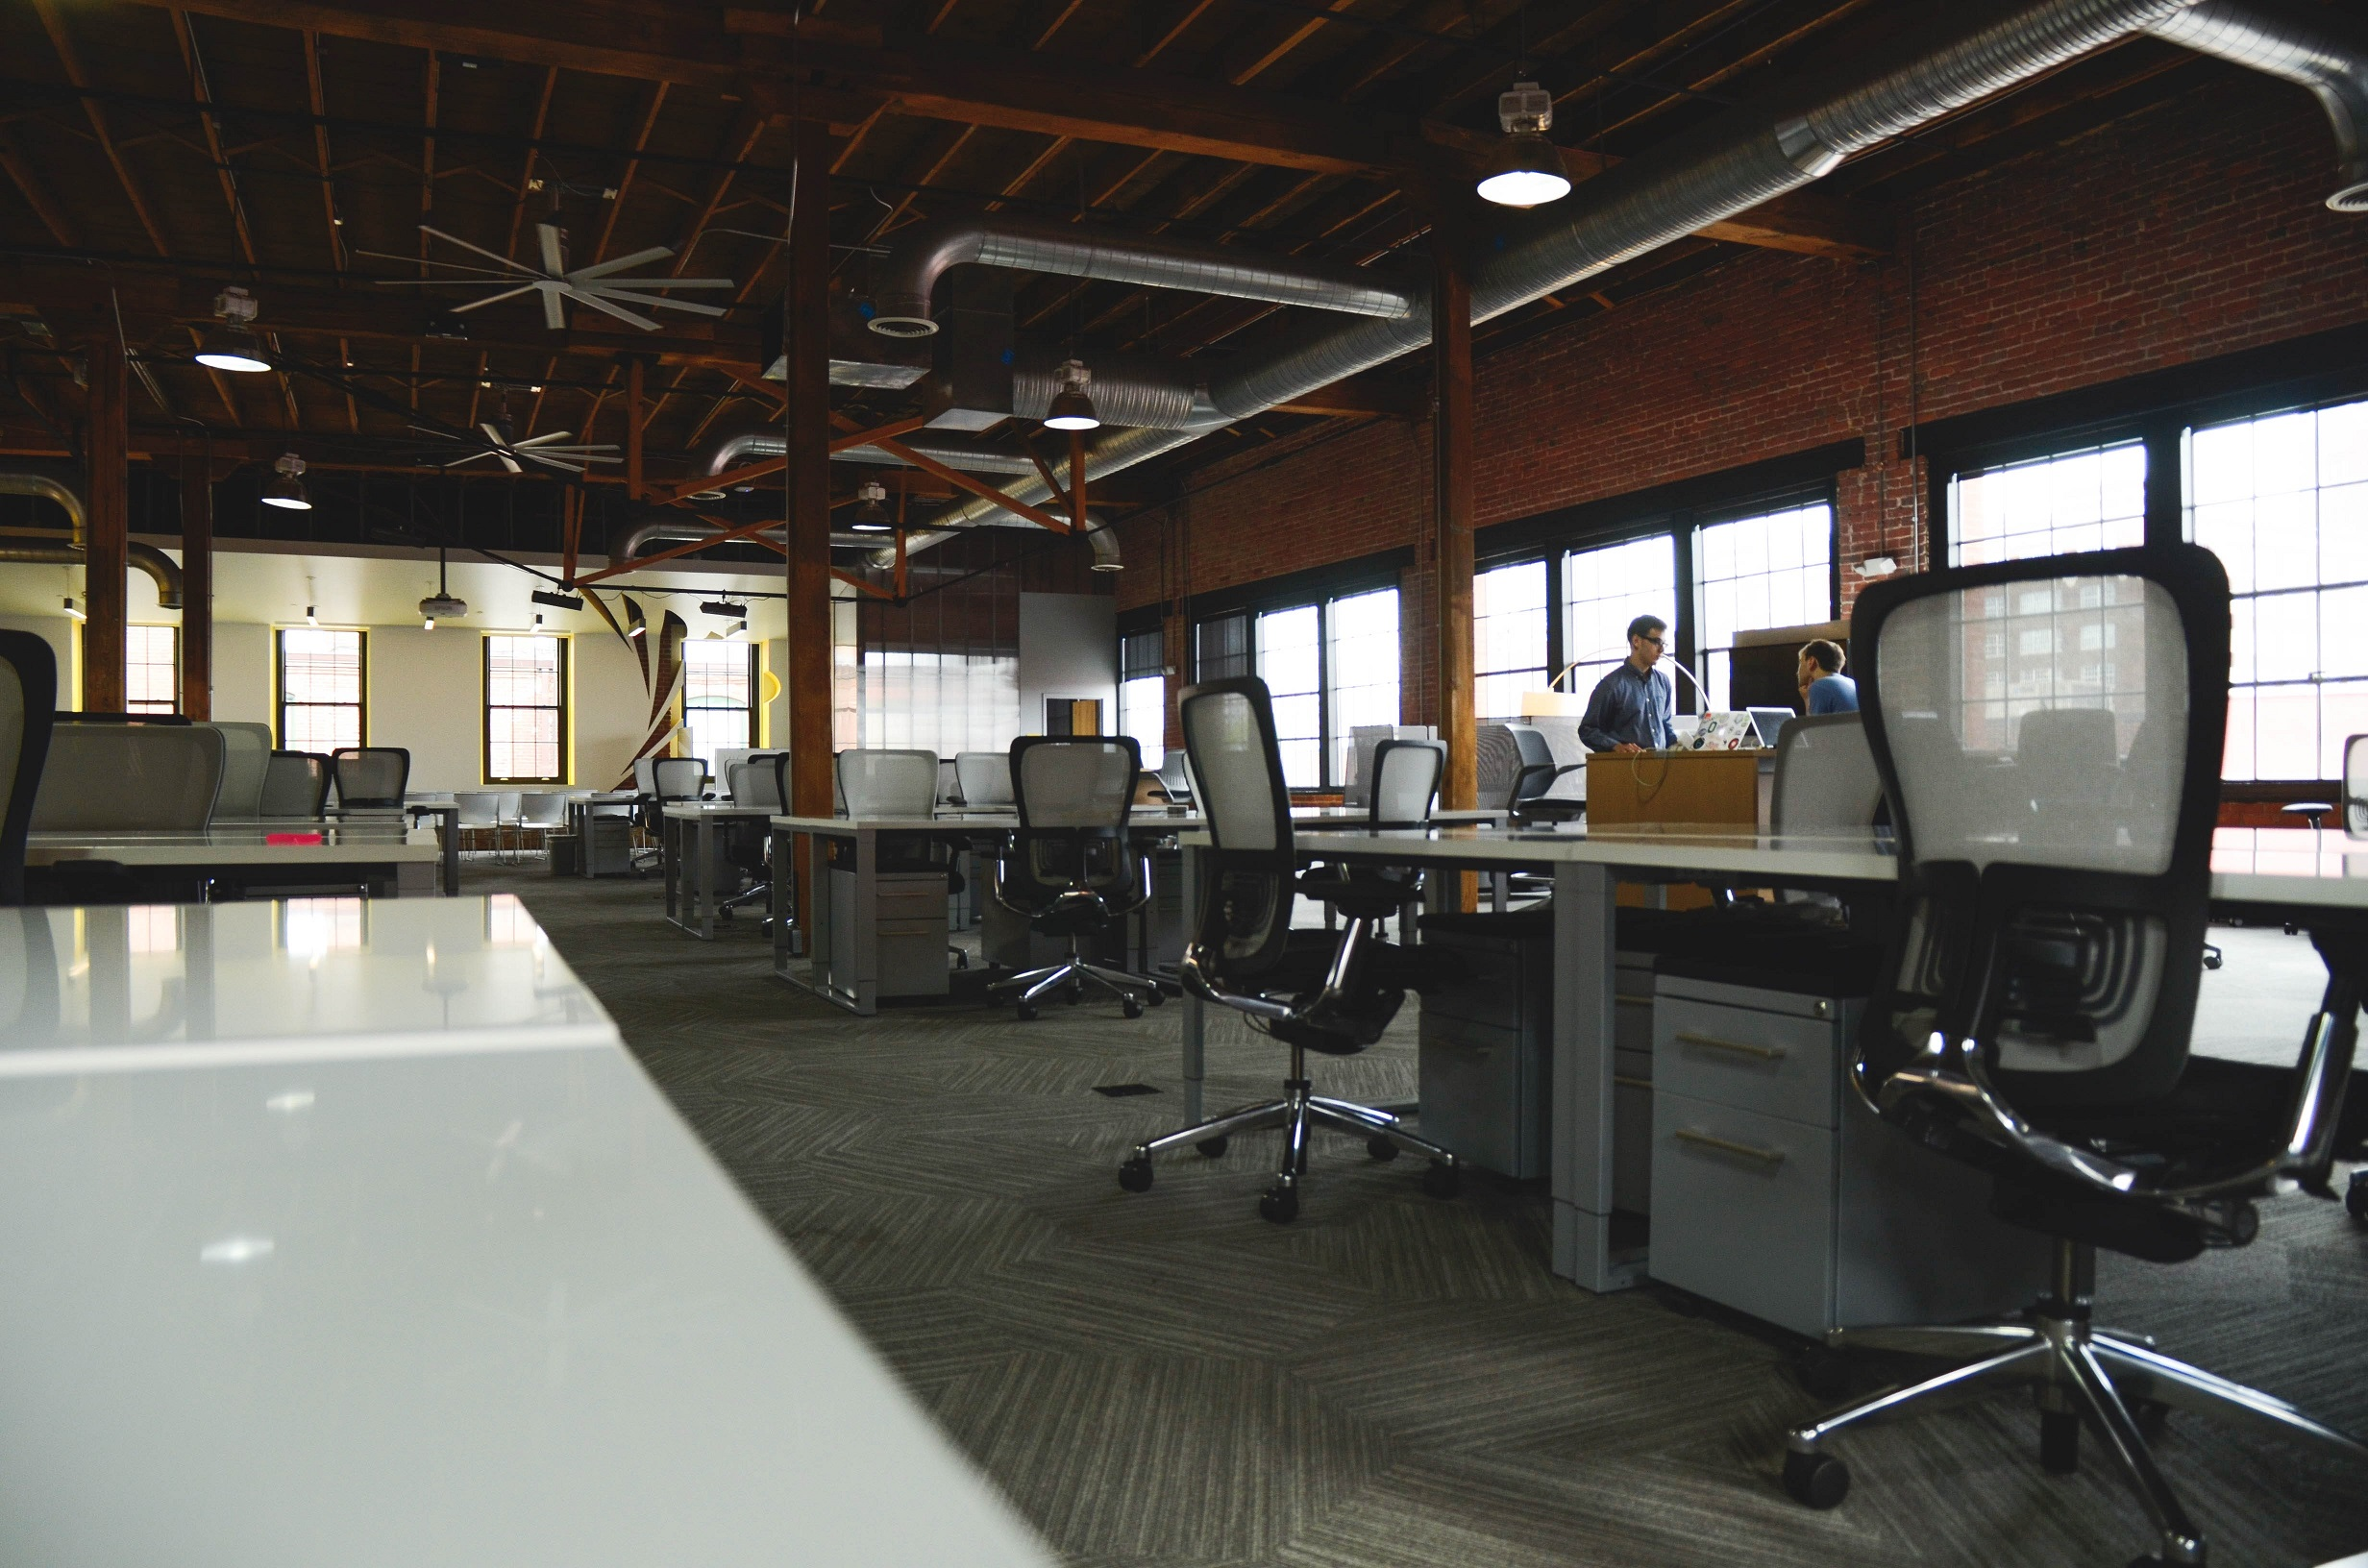 Open office plan with chairs and long tables